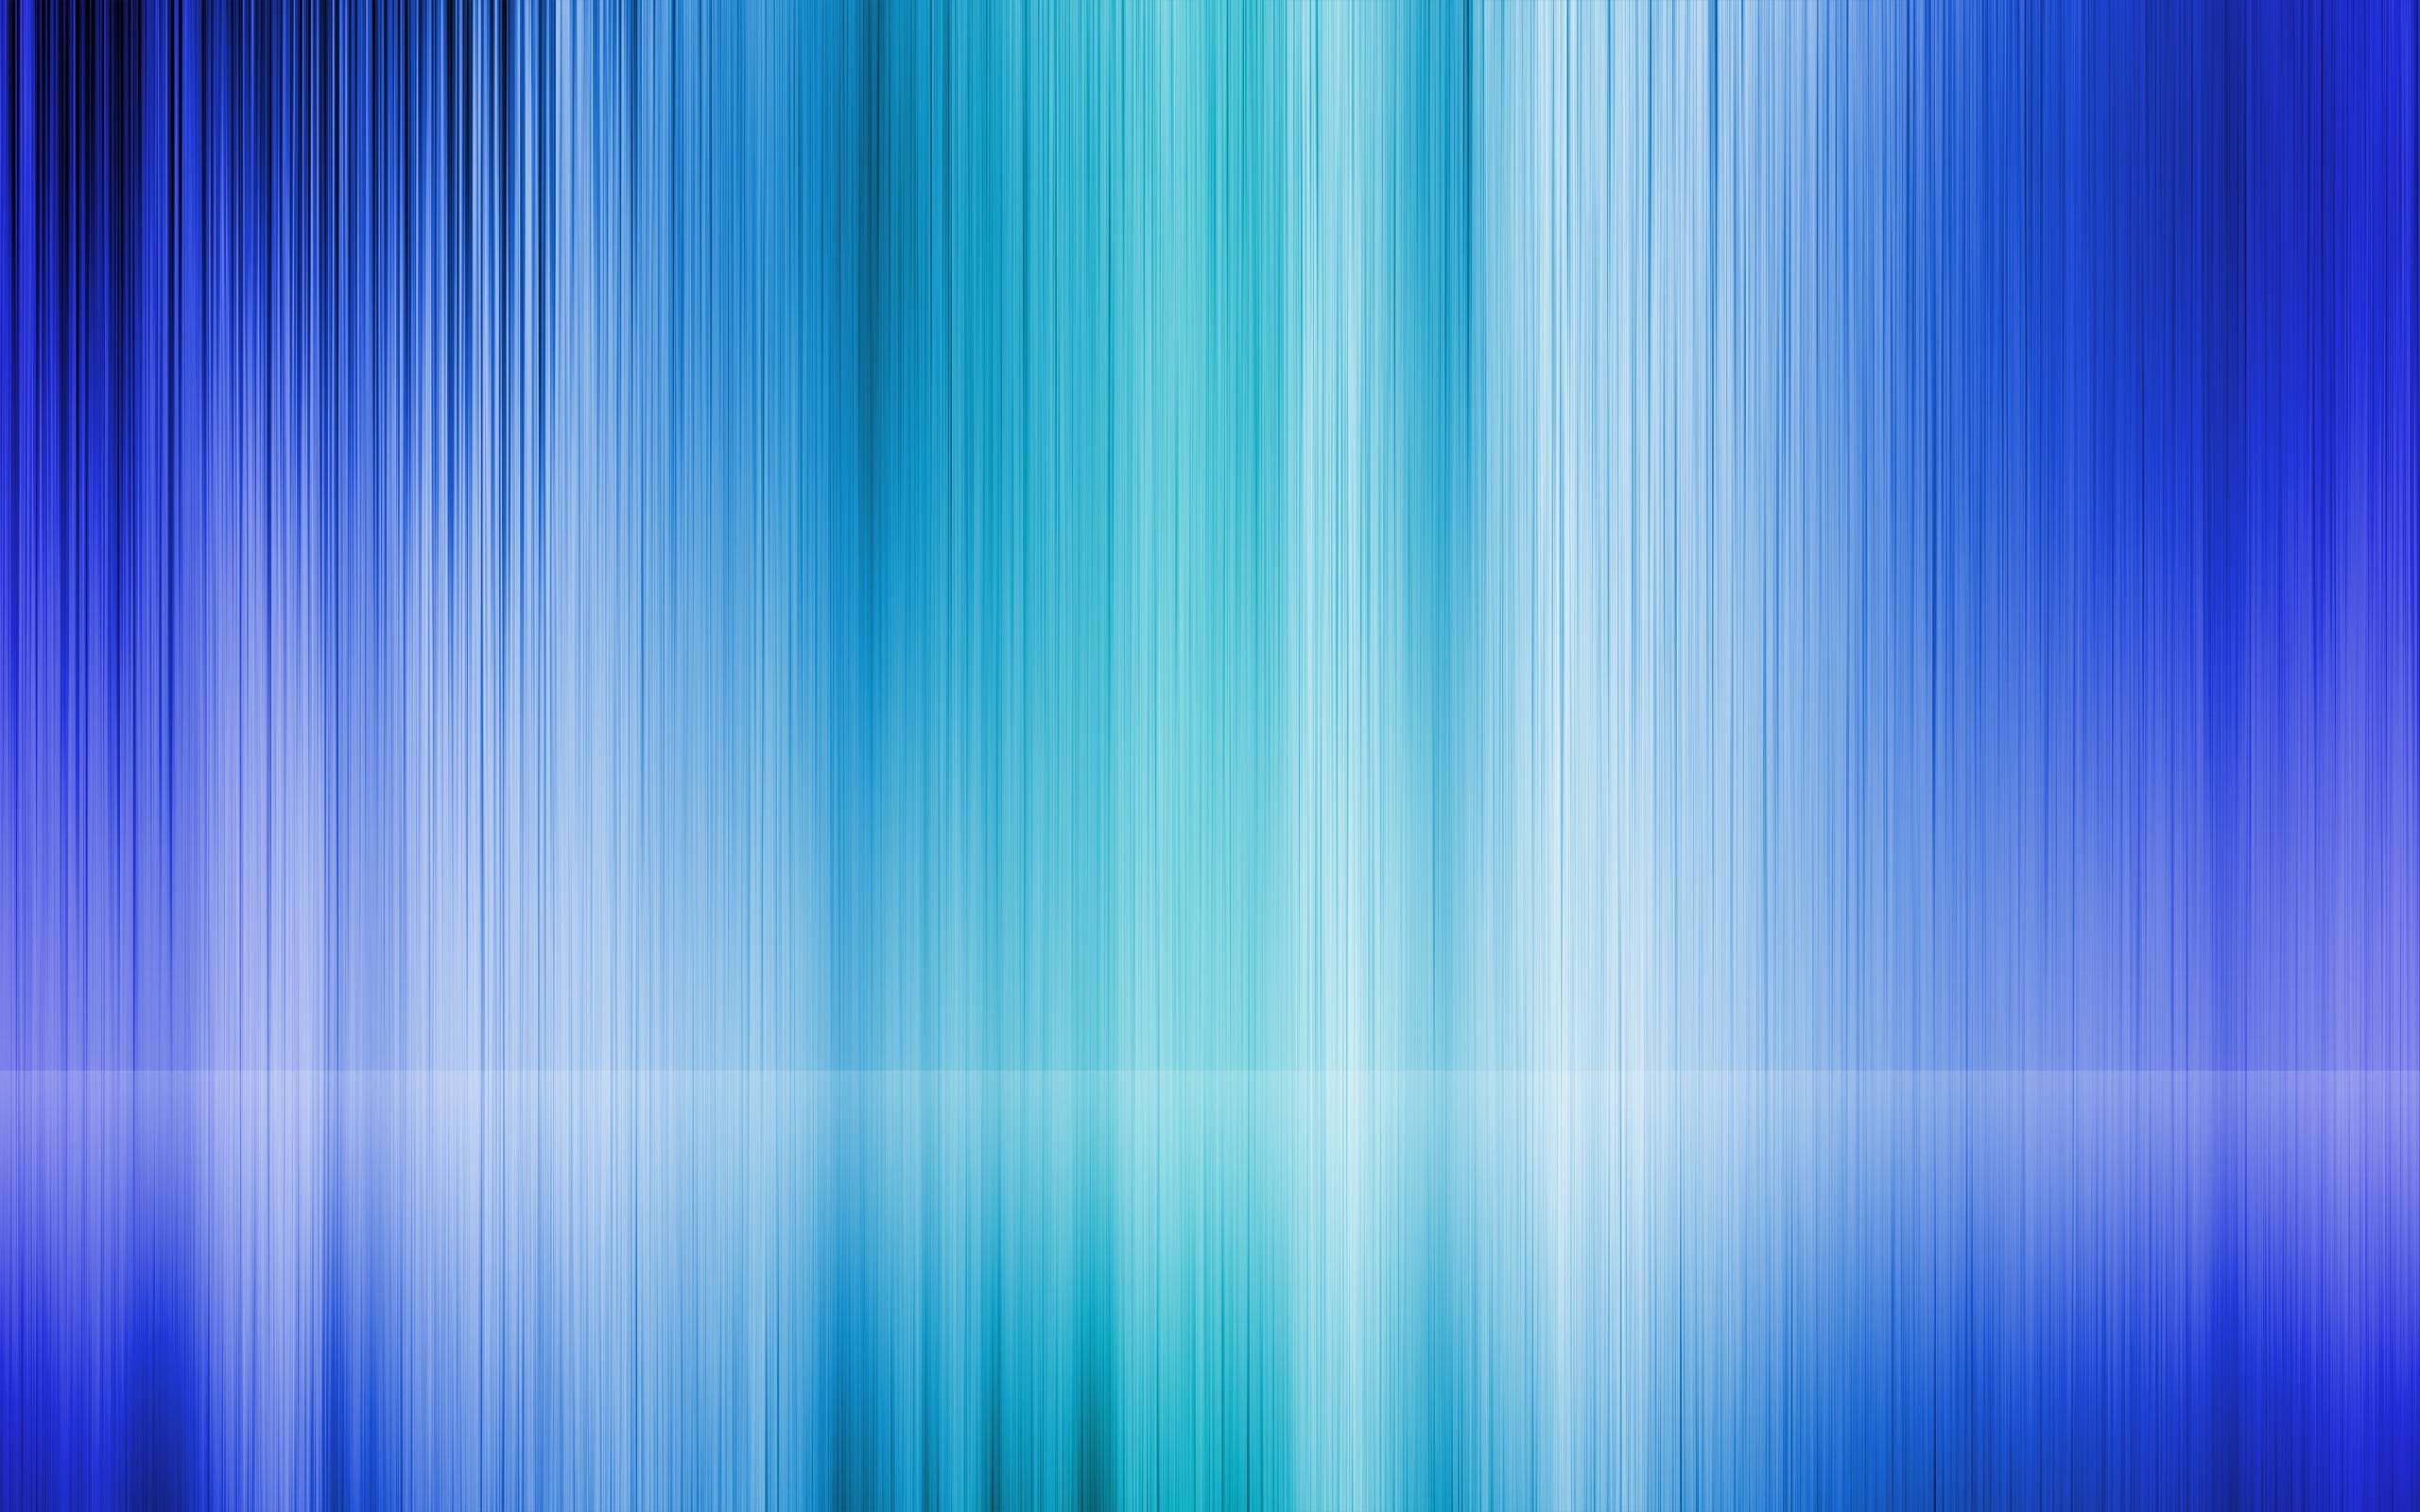 3d wallpaper blue light - photo #27